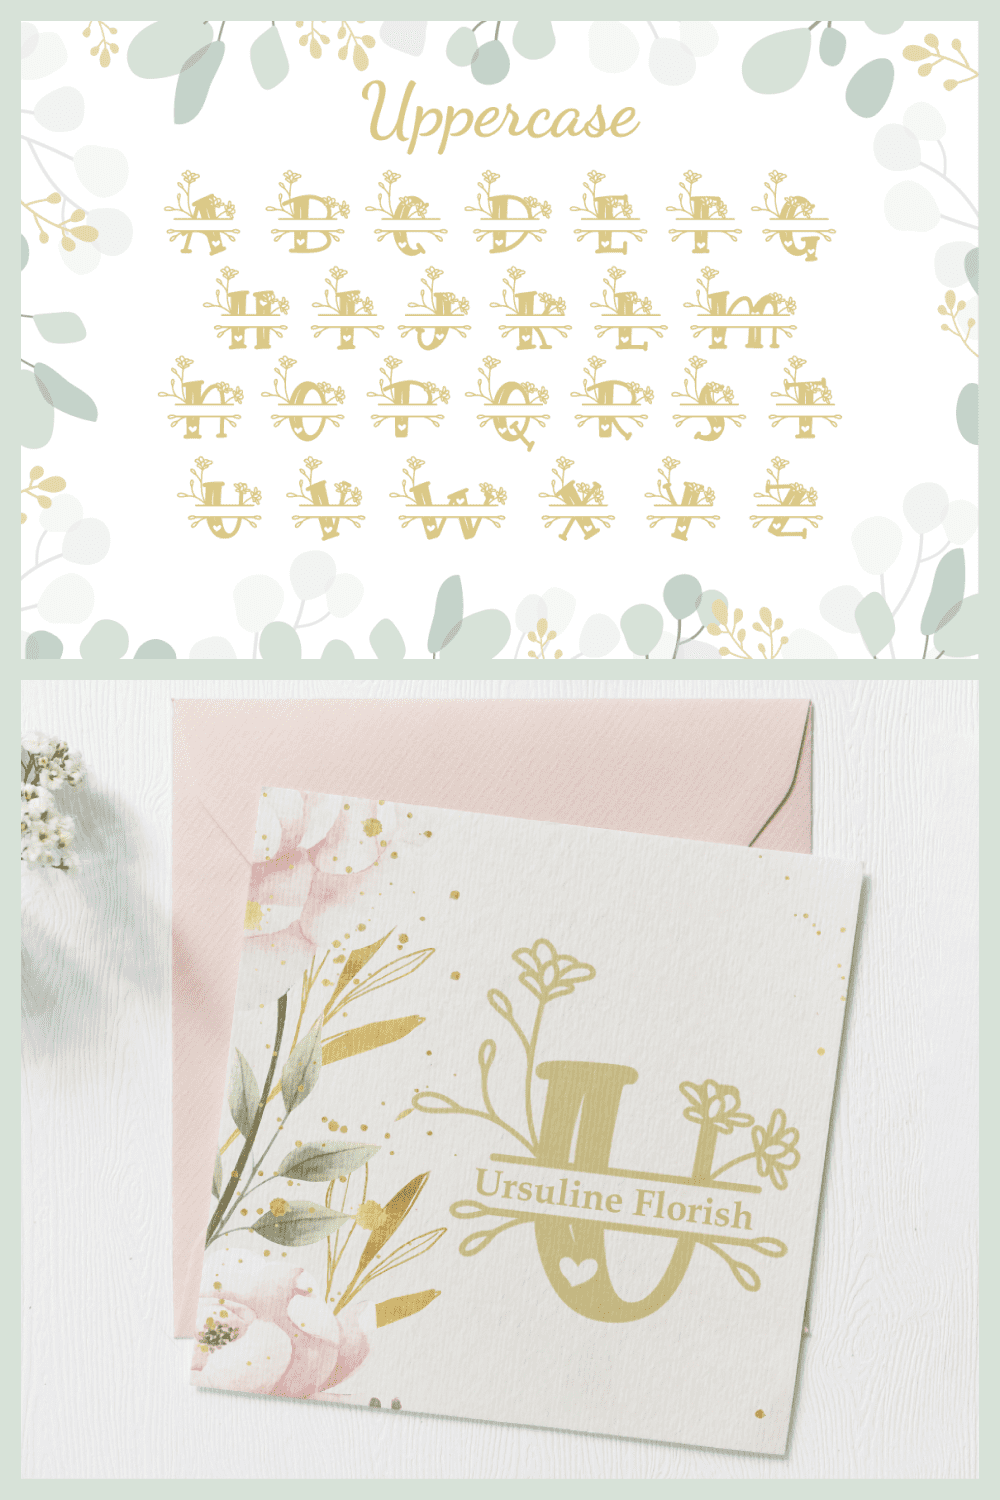 This font is springtime inspiration and grace.